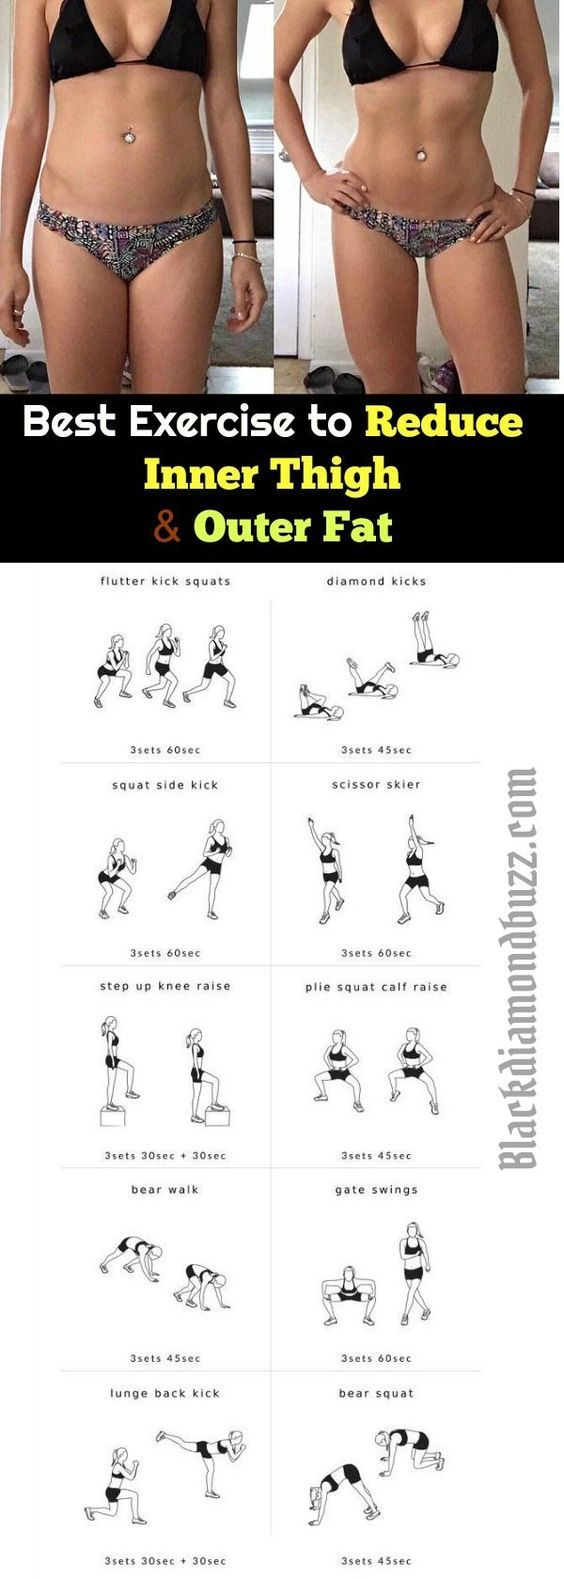 Balanced diets for weight loss picture 6